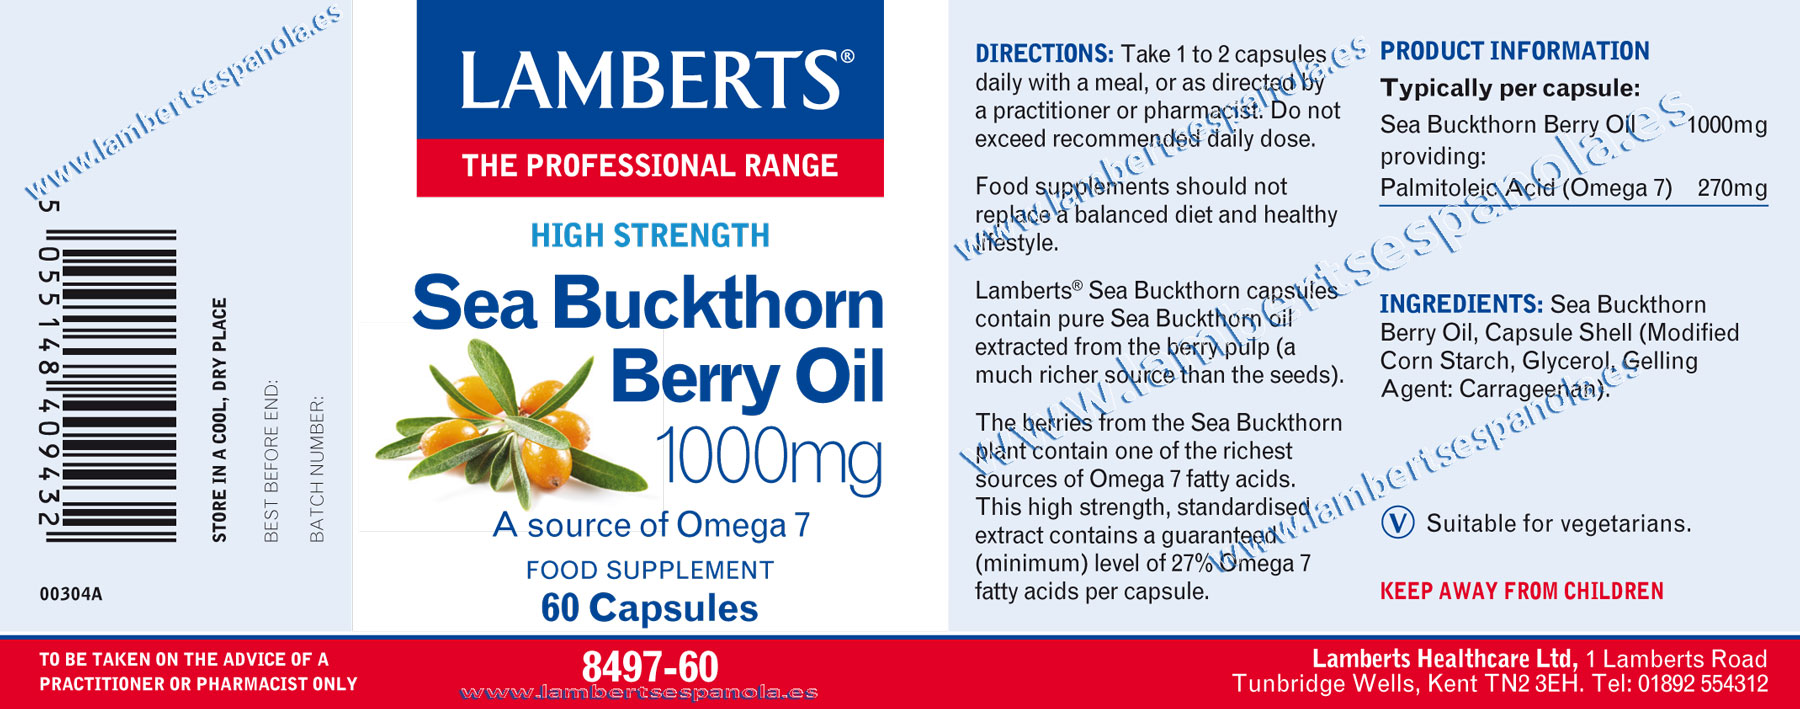 Sea Buckthorn Berry Oil properties